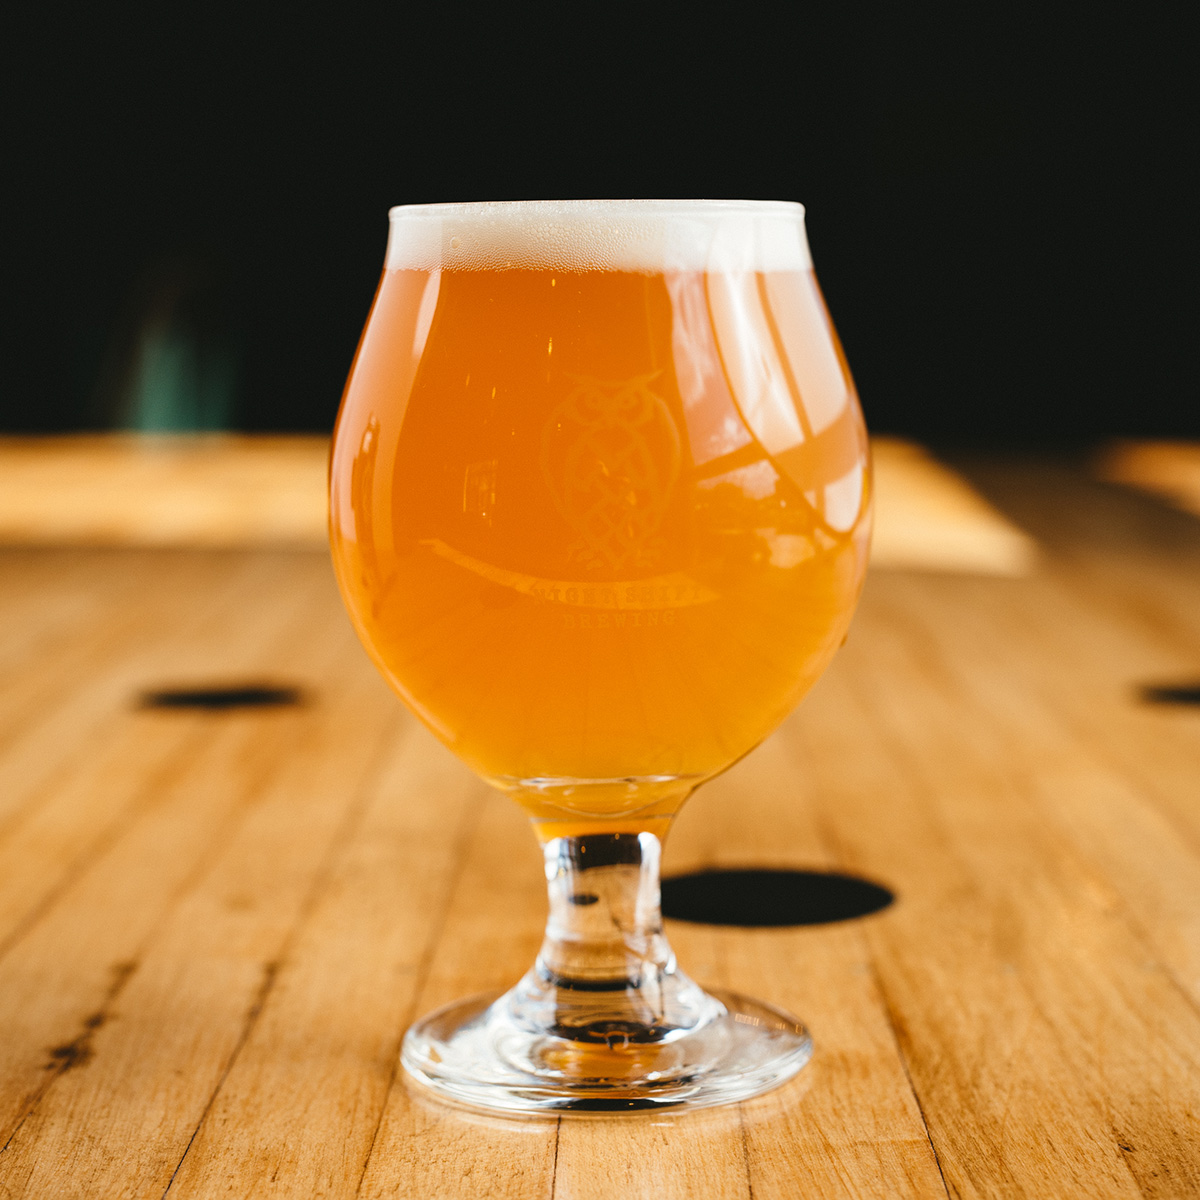 XLV, the newest presidential double IPA from Night Shift Brewing. / Photo by Tim Oxton